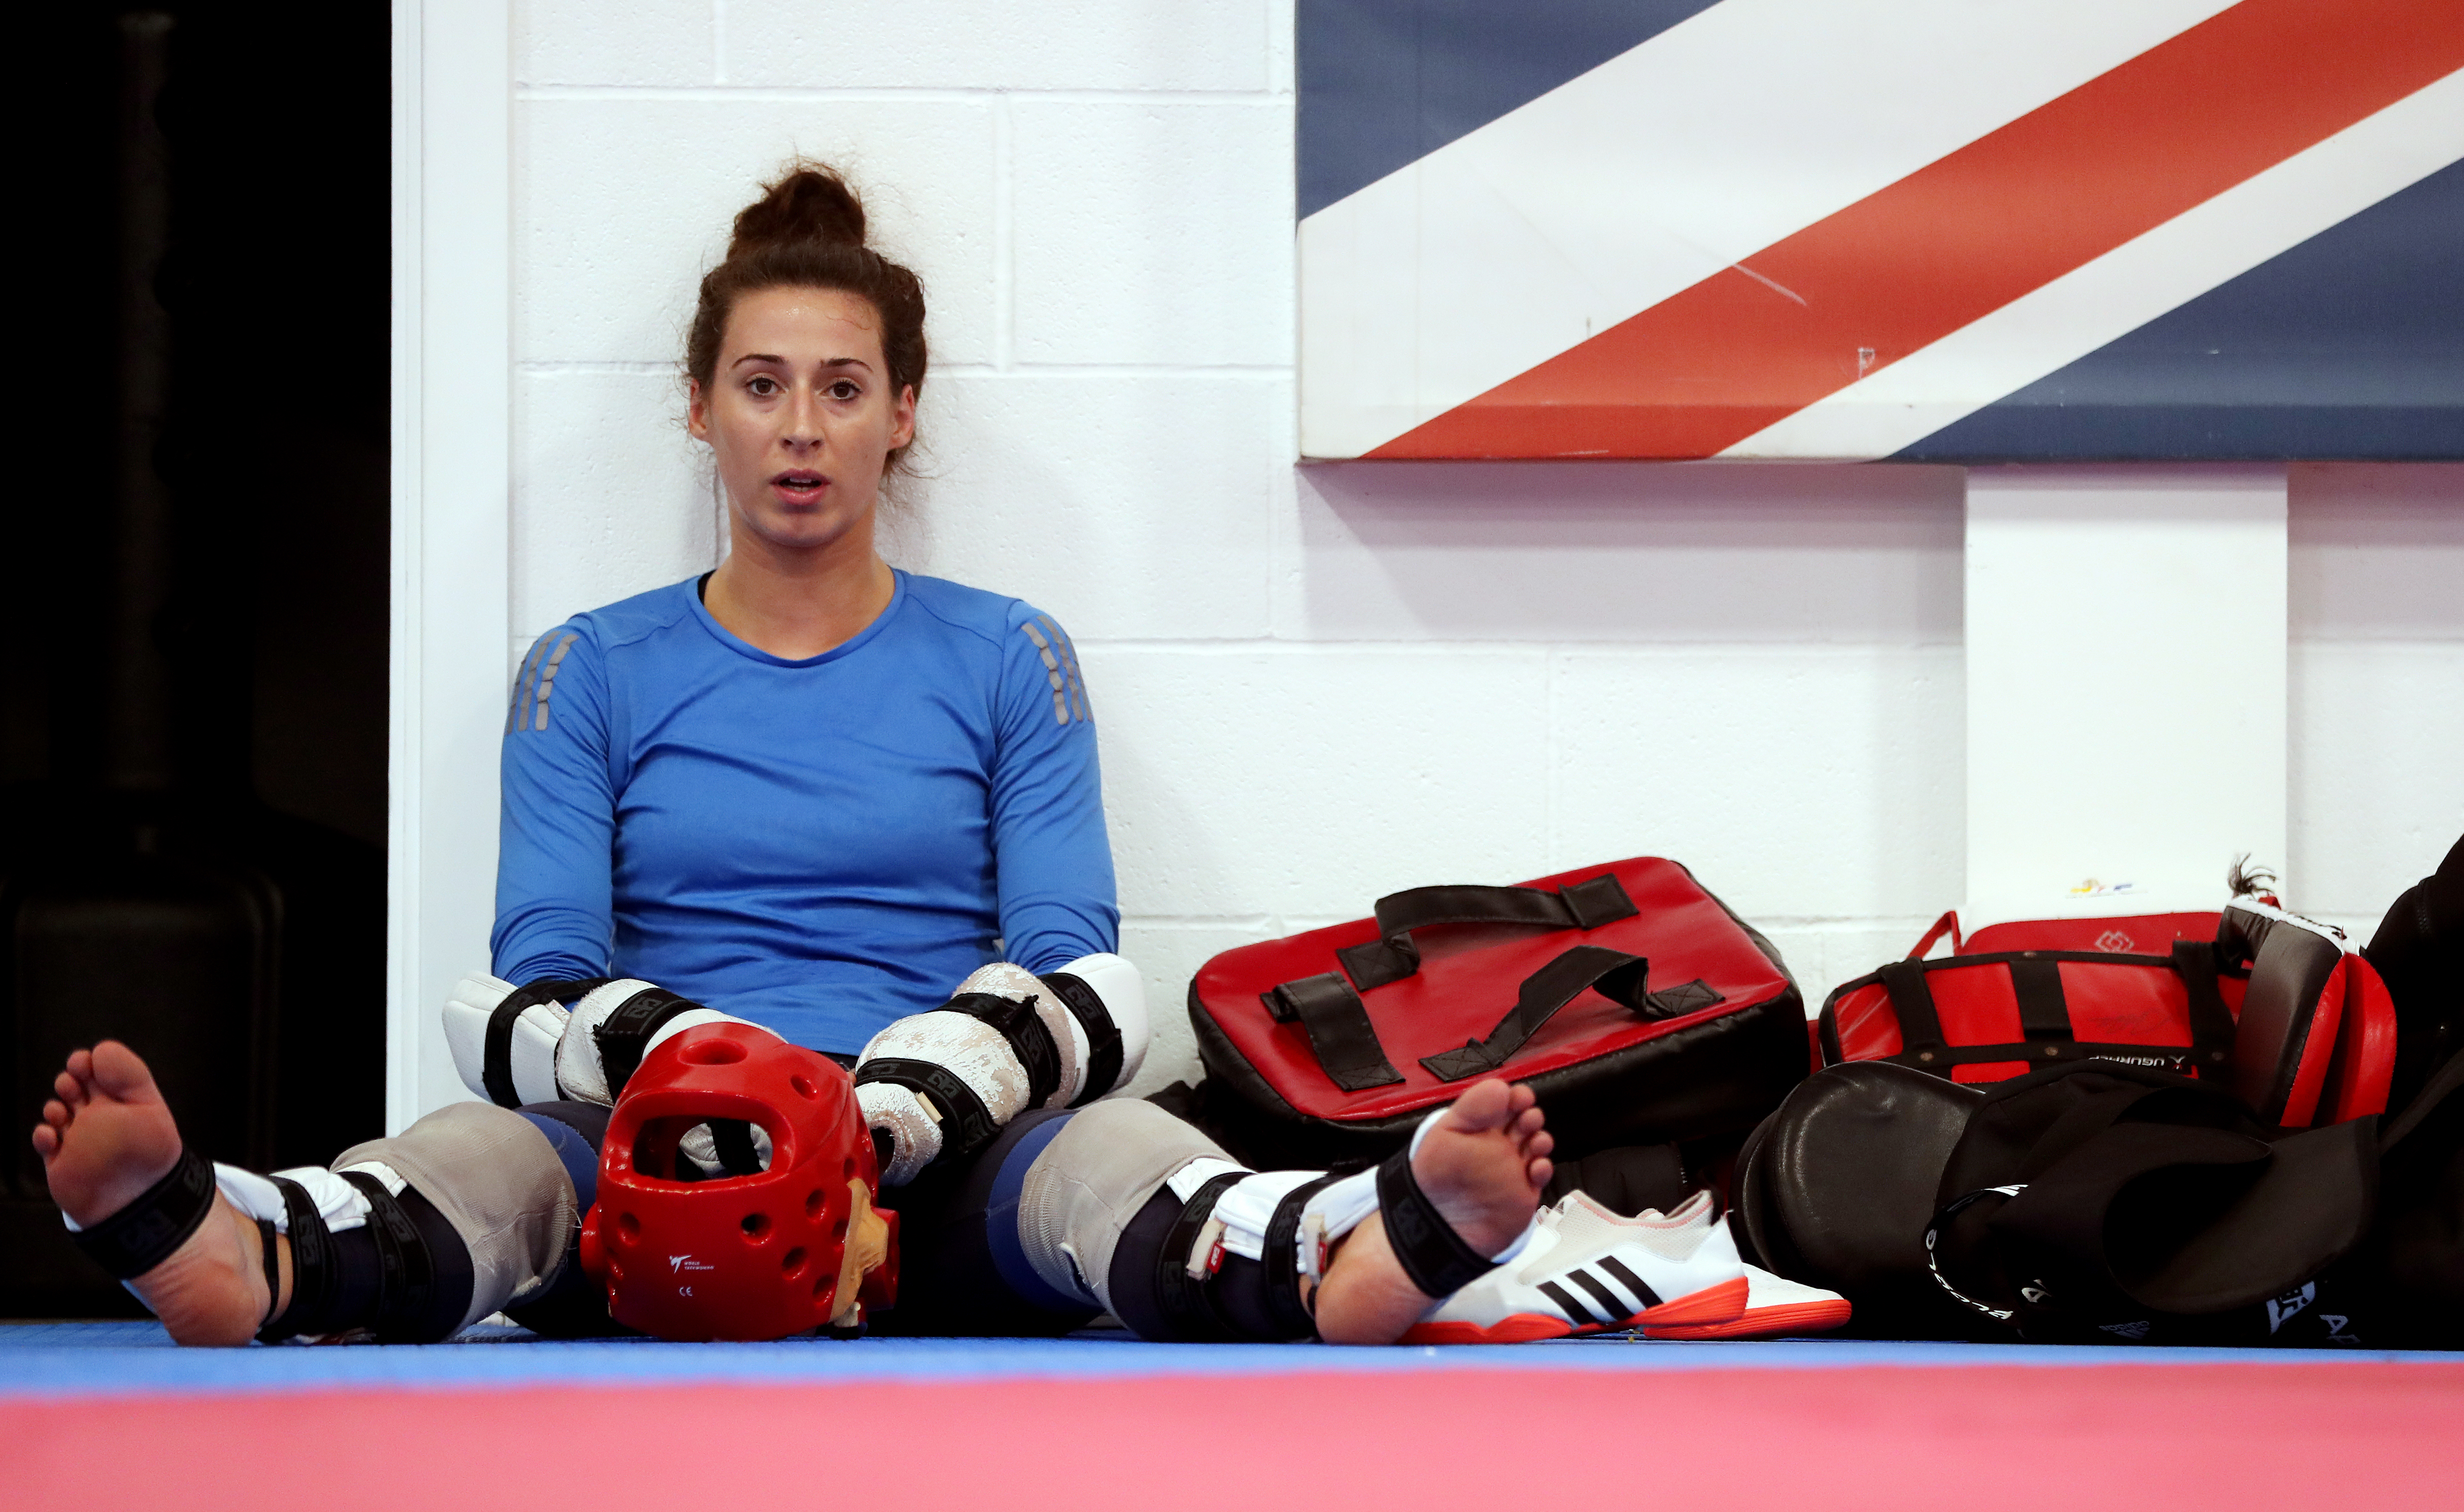 Bianca Walkden during the training session at the National Taekwondo Centre, Manchester. (Photo by David Davies/PA Images via Getty Images)